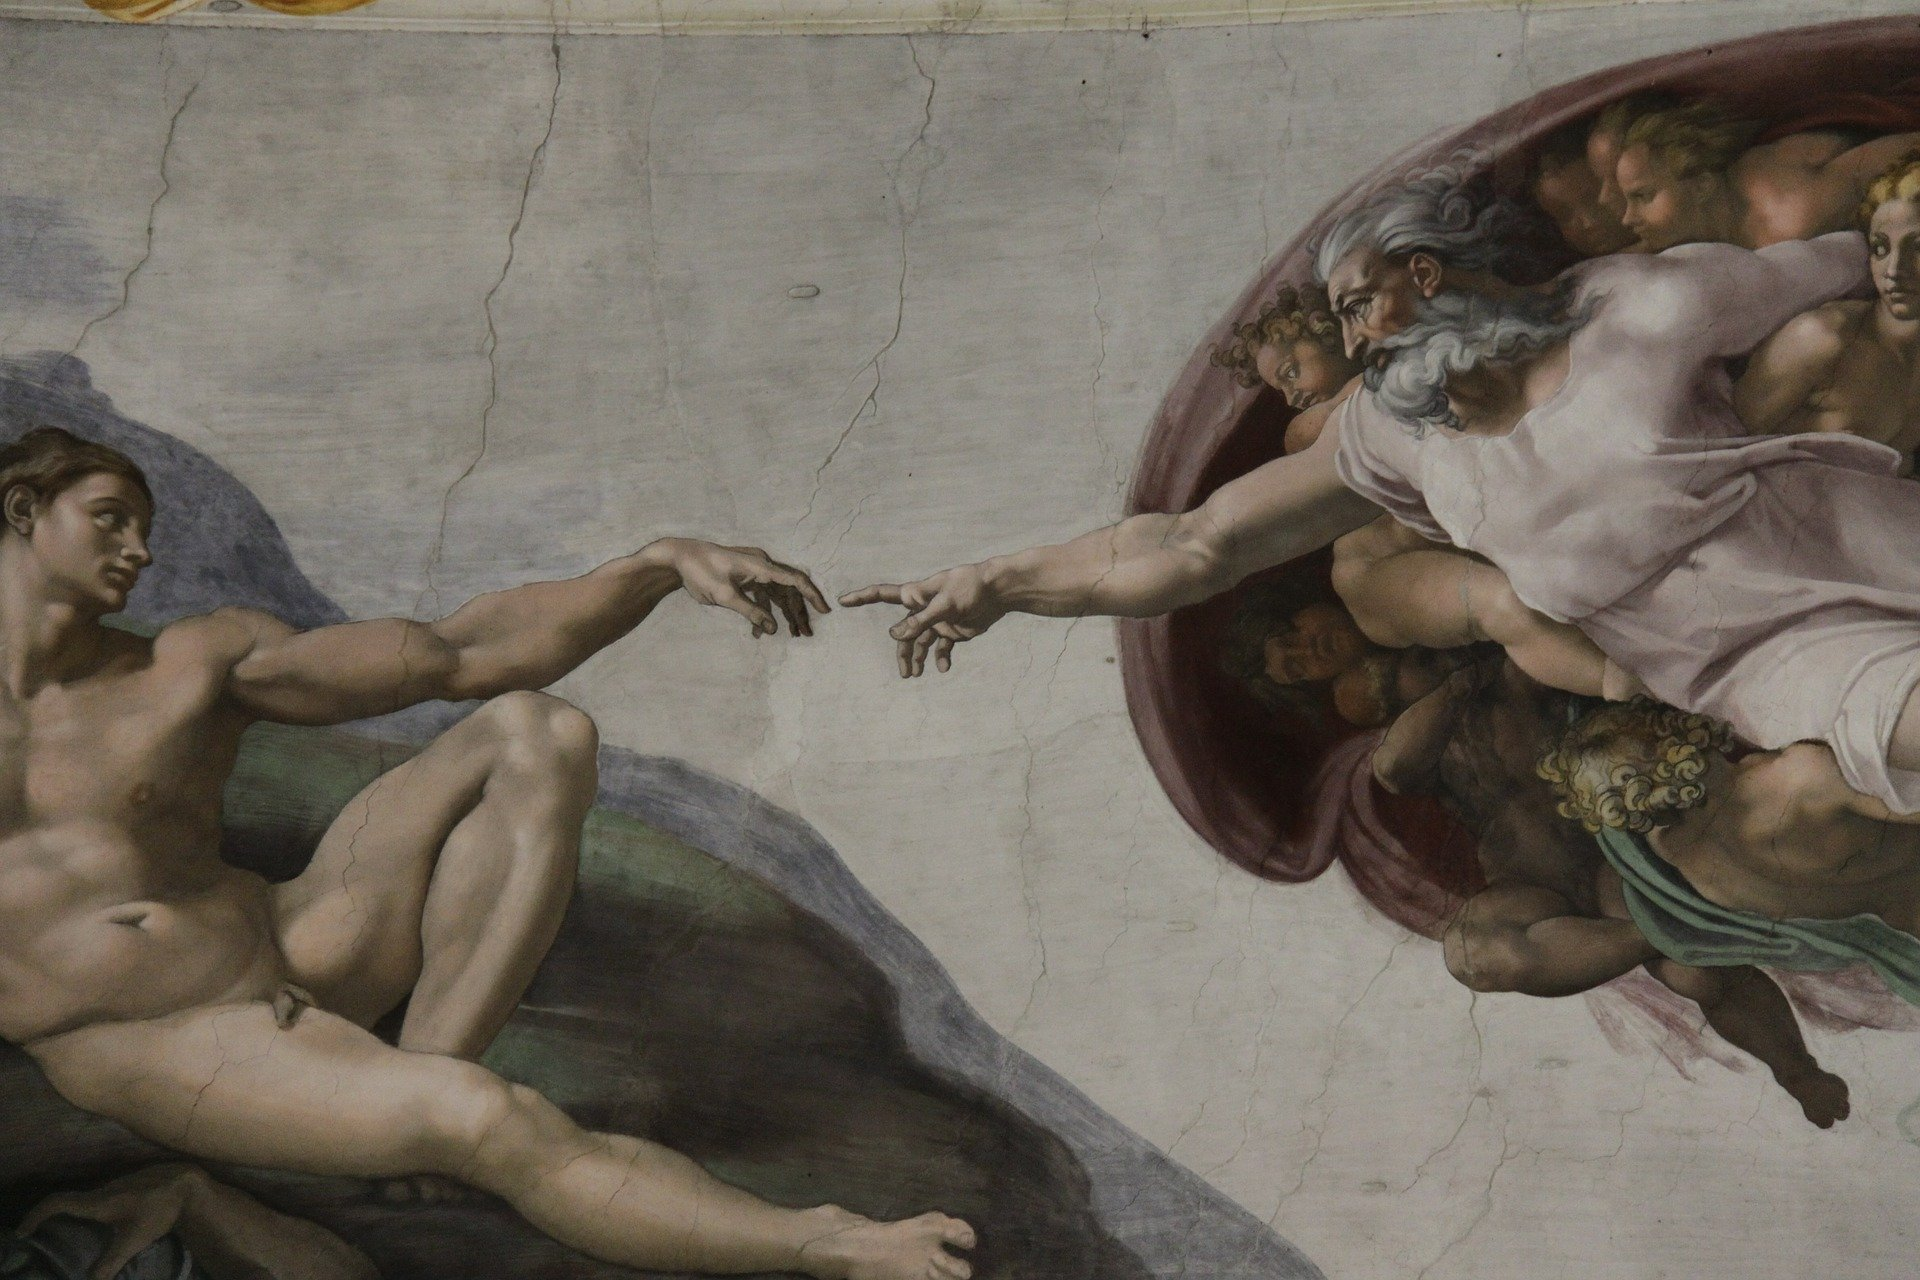 The Creation of Adam by Michelangelo, Sistine Chapel, Vatican City